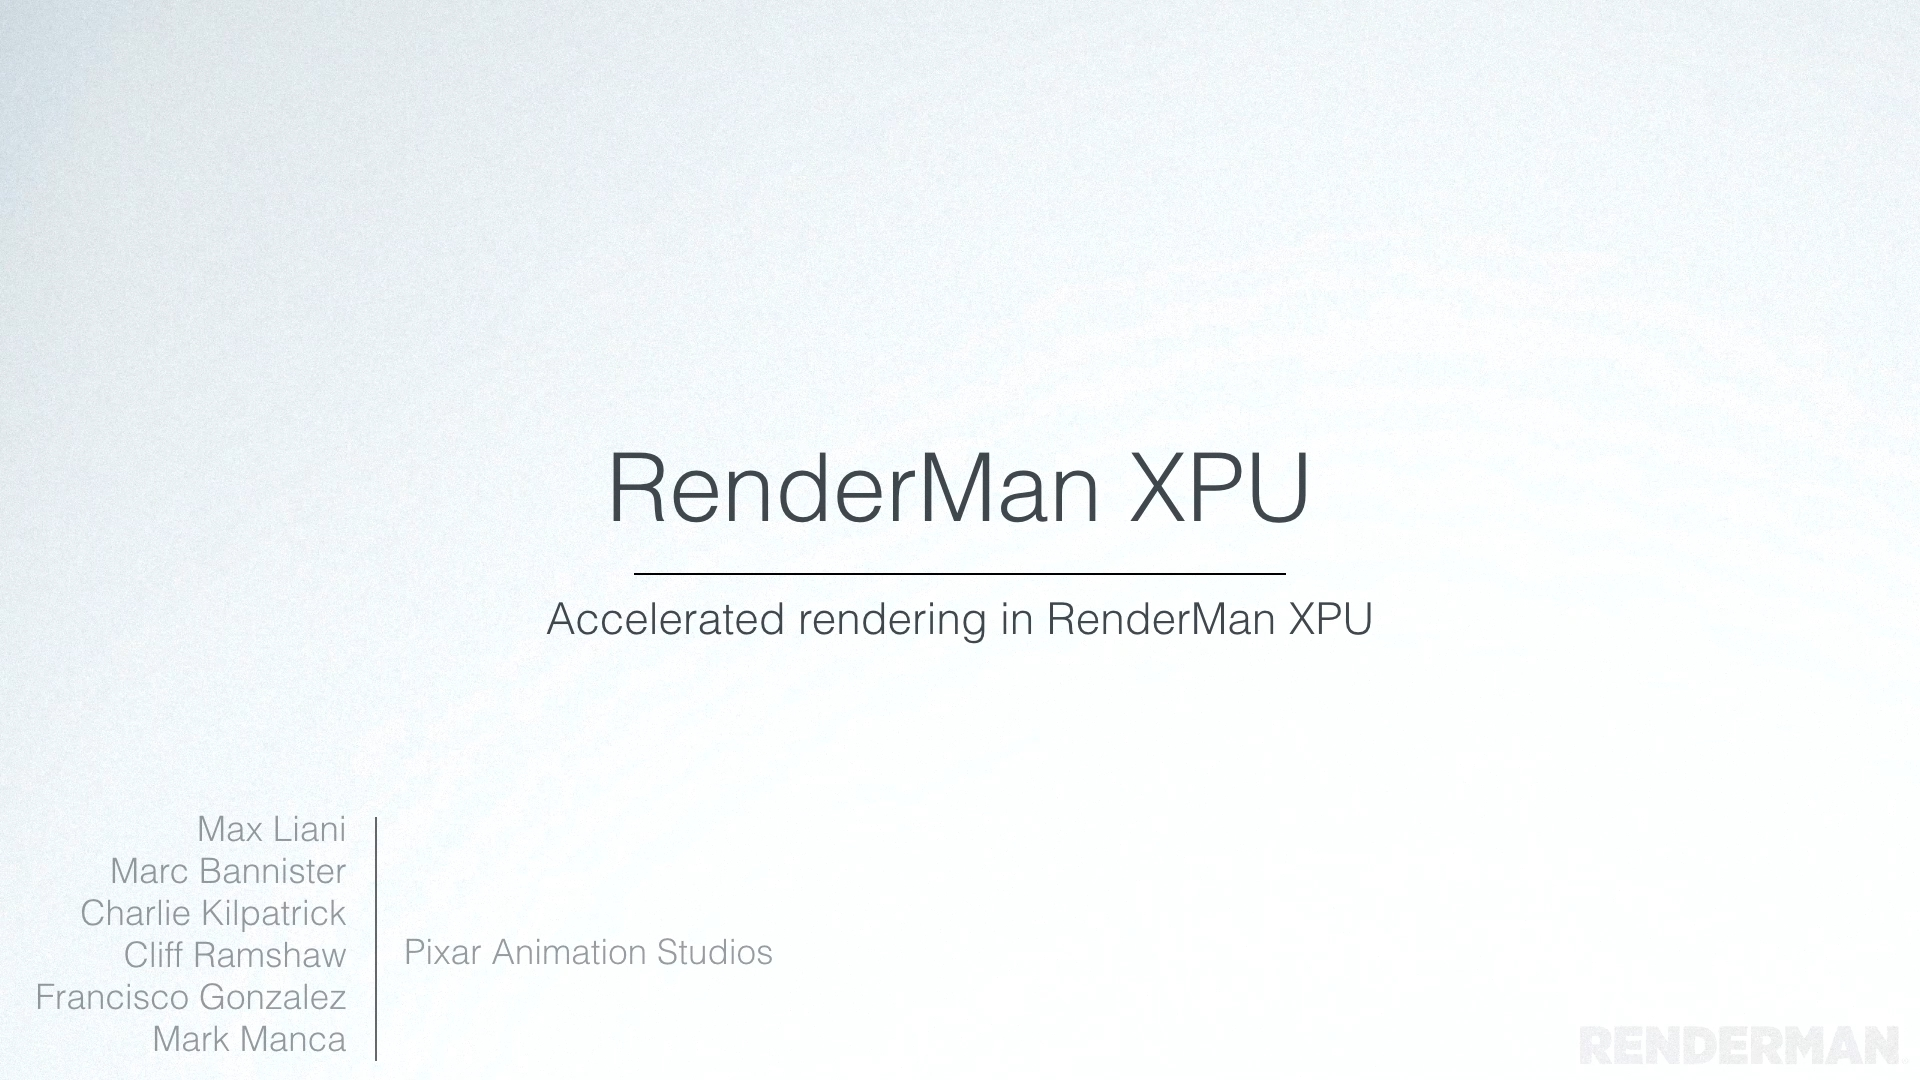 GTC Silicon Valley-2019: Adding GPU Acceleration to Pixar Renderman